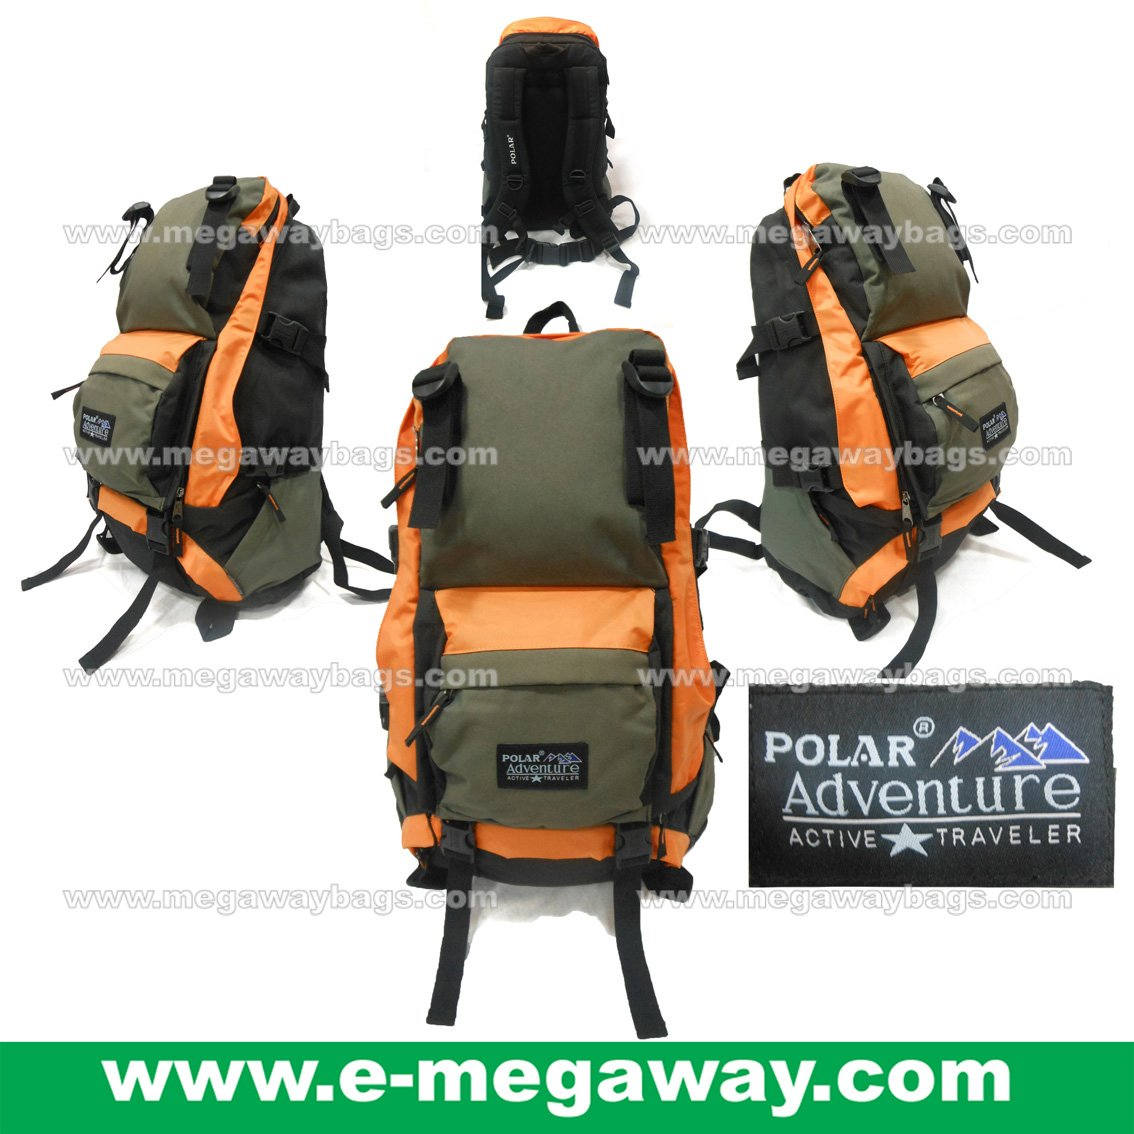 POLAR Adventure Camping Hiking Backpack Day Packs Picnic Travel Gym MegawayBags #CC-0978